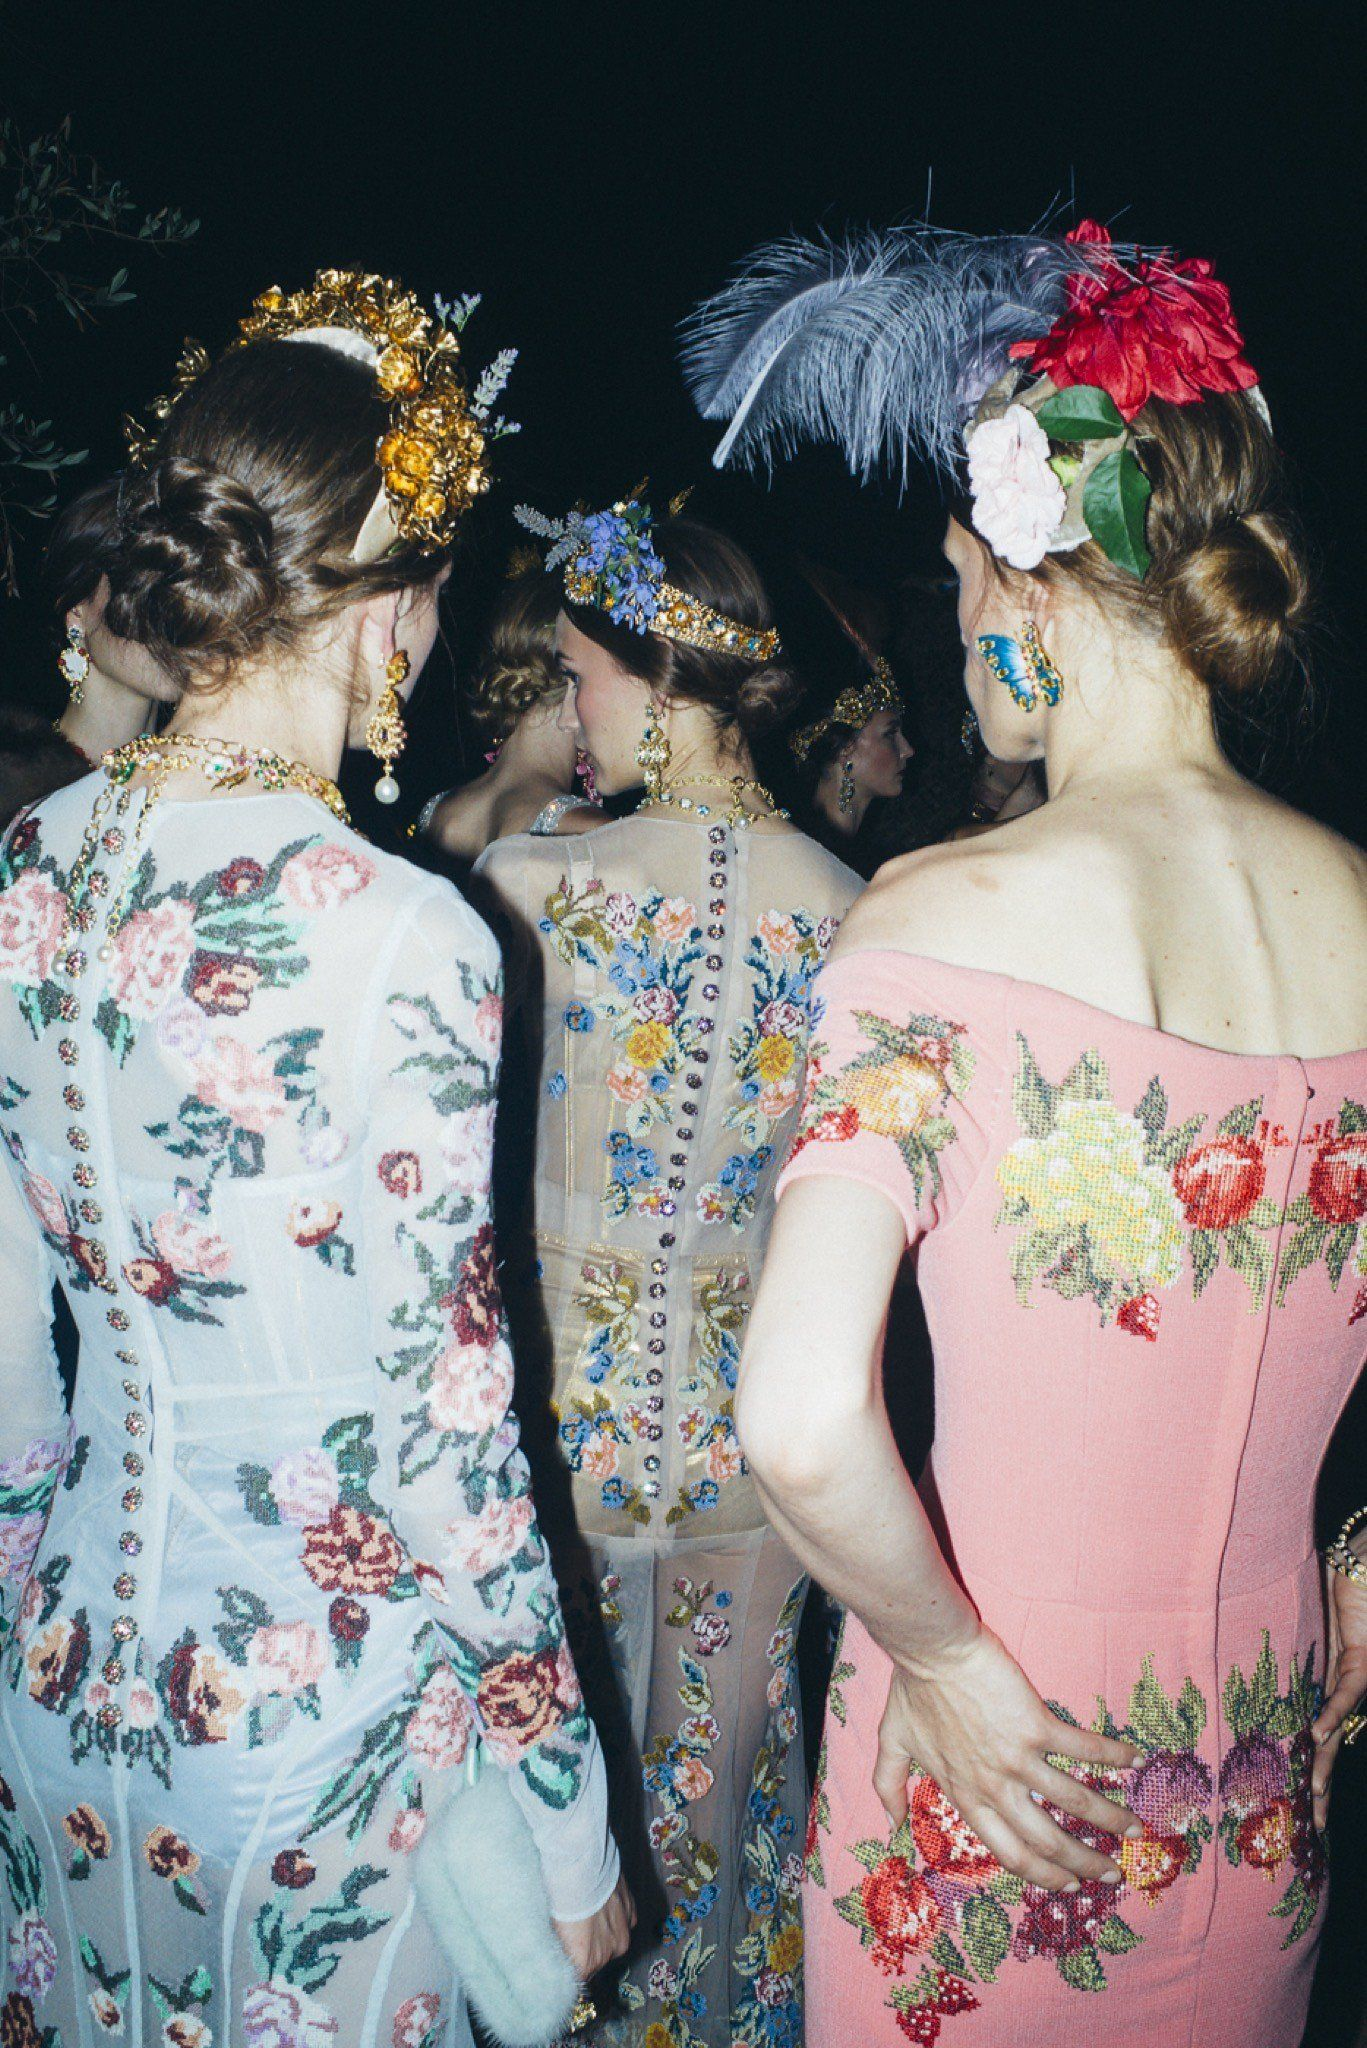 Backstage at Dolce & Gabbana Alta Moda